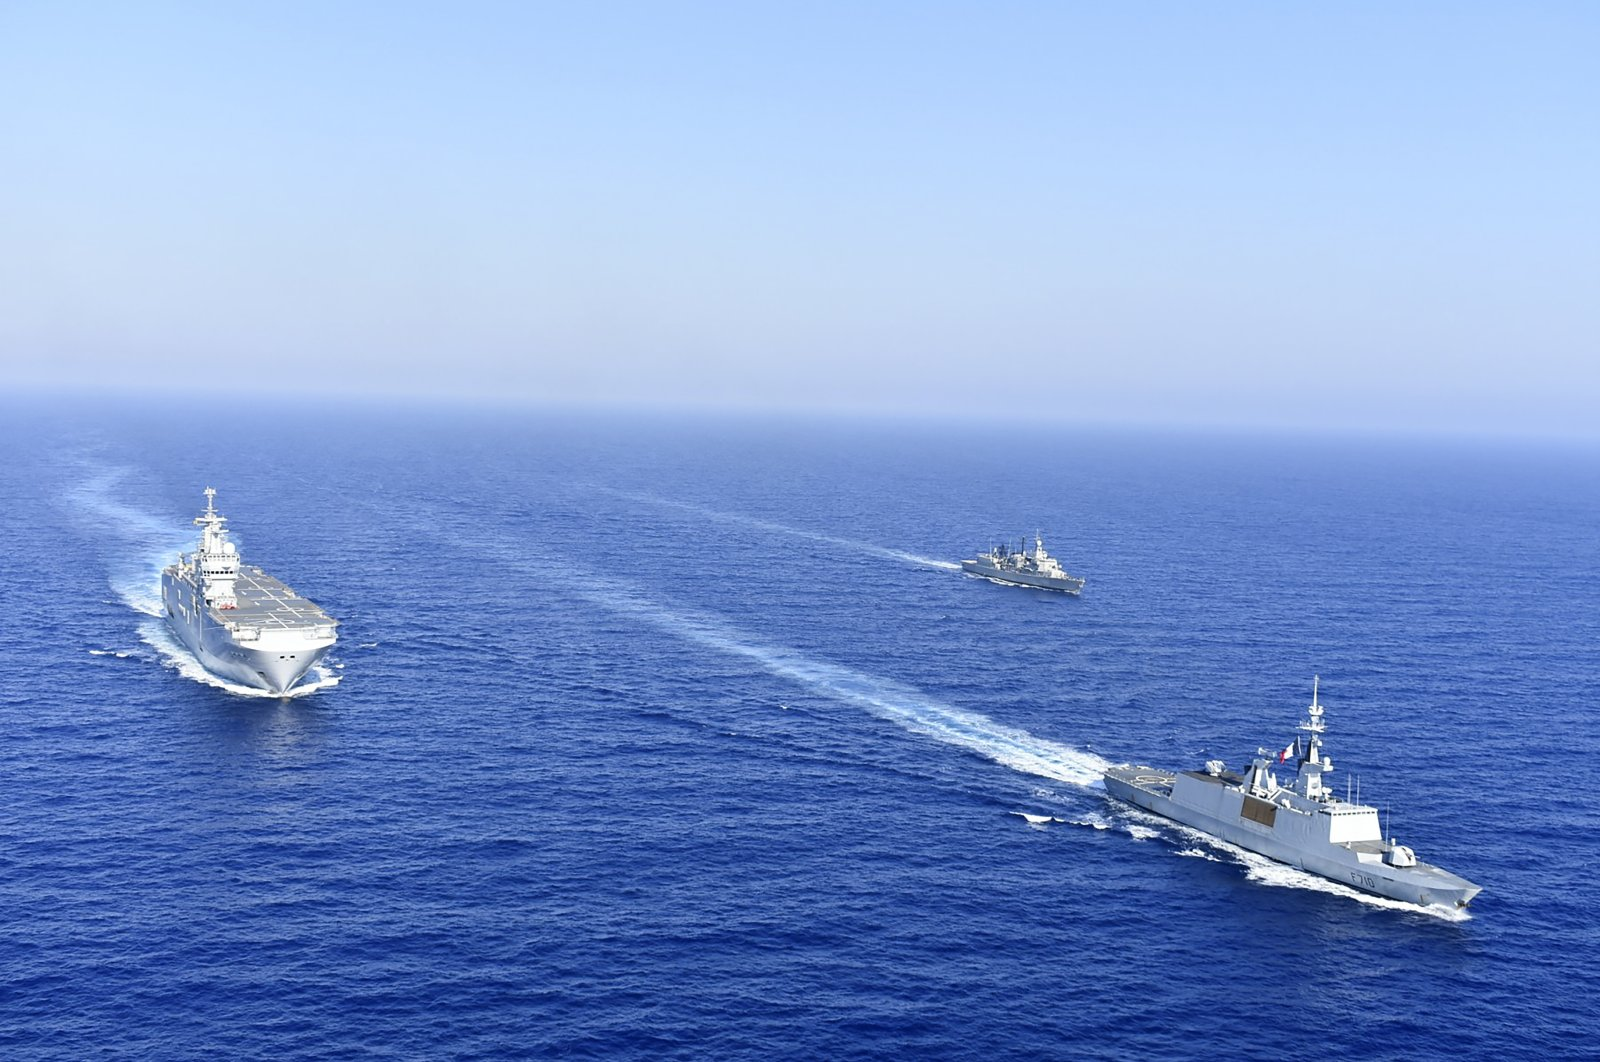 A French Tonnerre helicopter carrier is escorted by Greek and French military vessels during a maritime exercise in the Eastern Mediterranean, Aug. 13, 2020. (AP Photo)